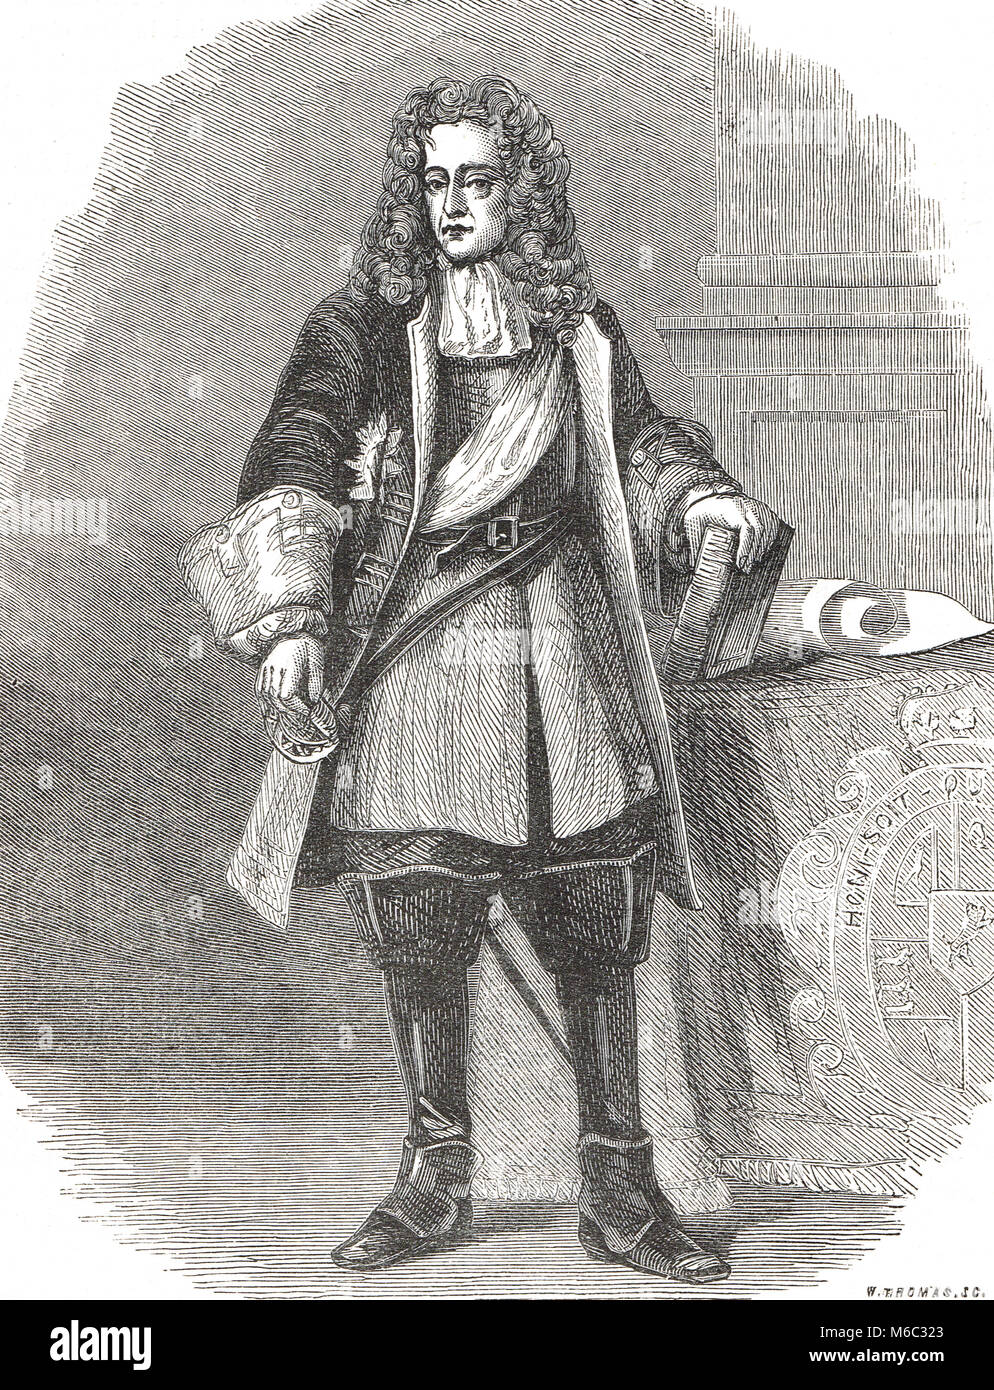 King William III of England, 1650-1702, reigned 1689-1702 - Stock Image